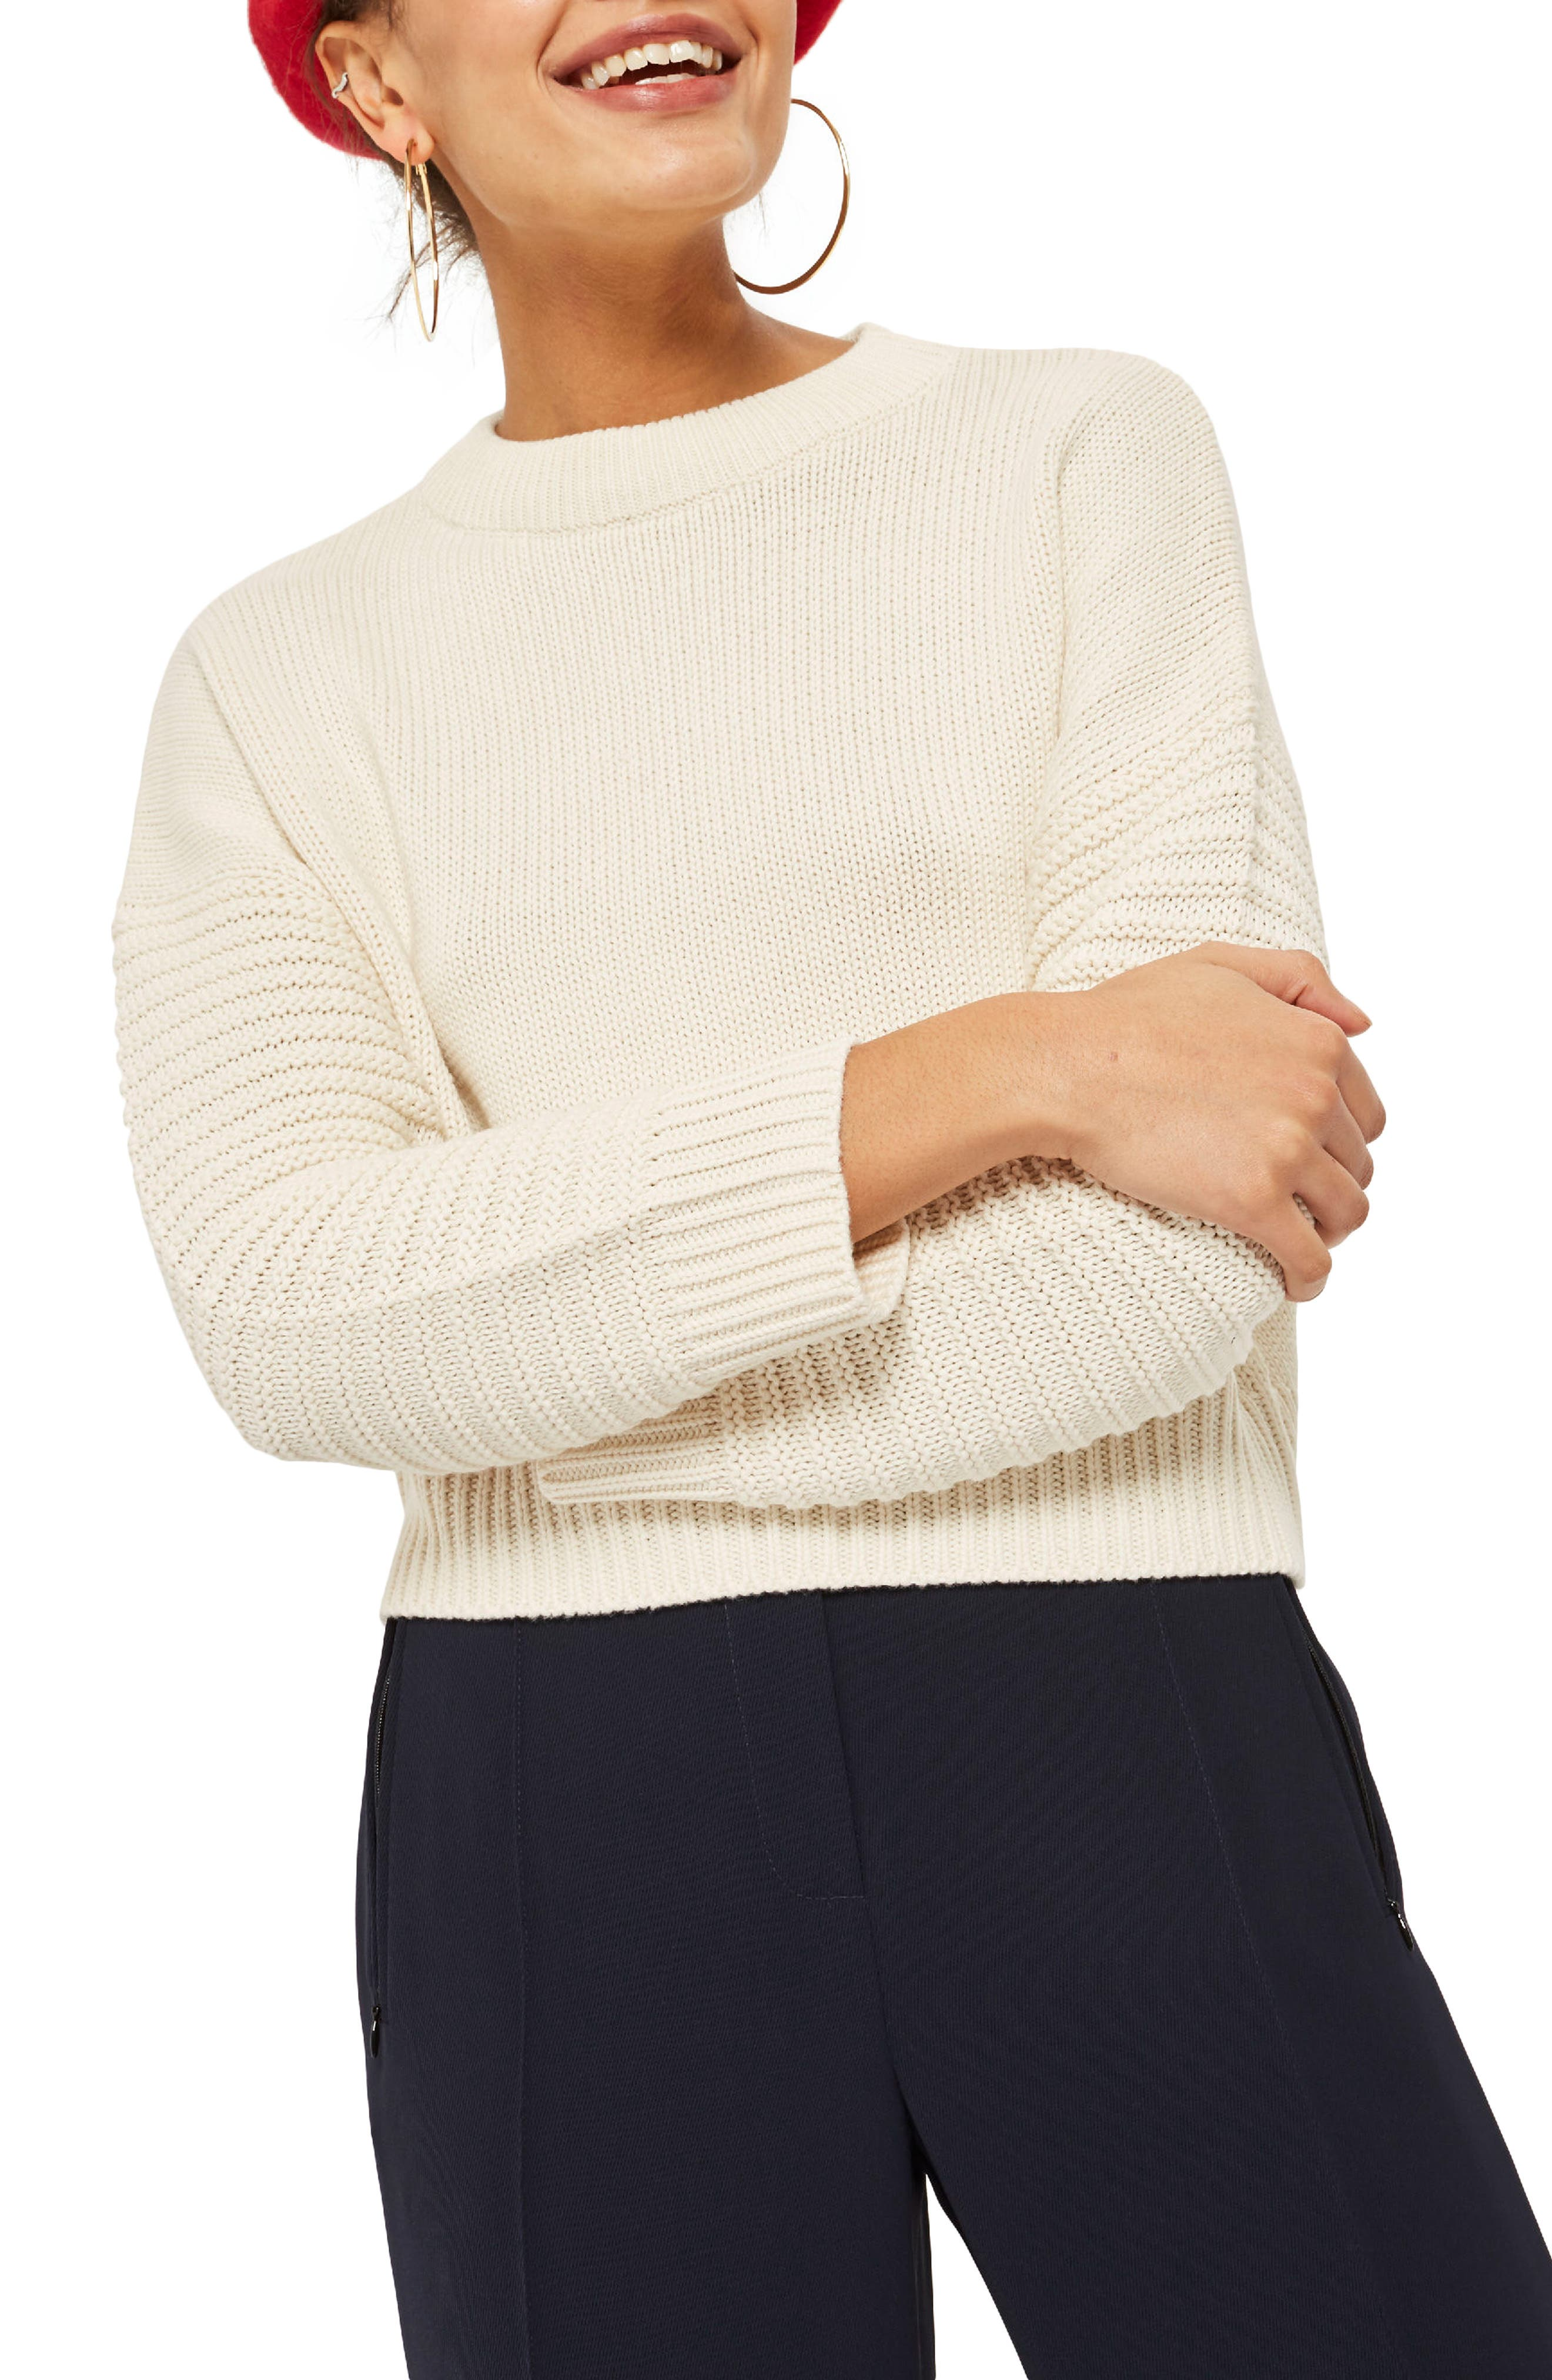 Stitch Sleeve Sweater,                             Main thumbnail 1, color,